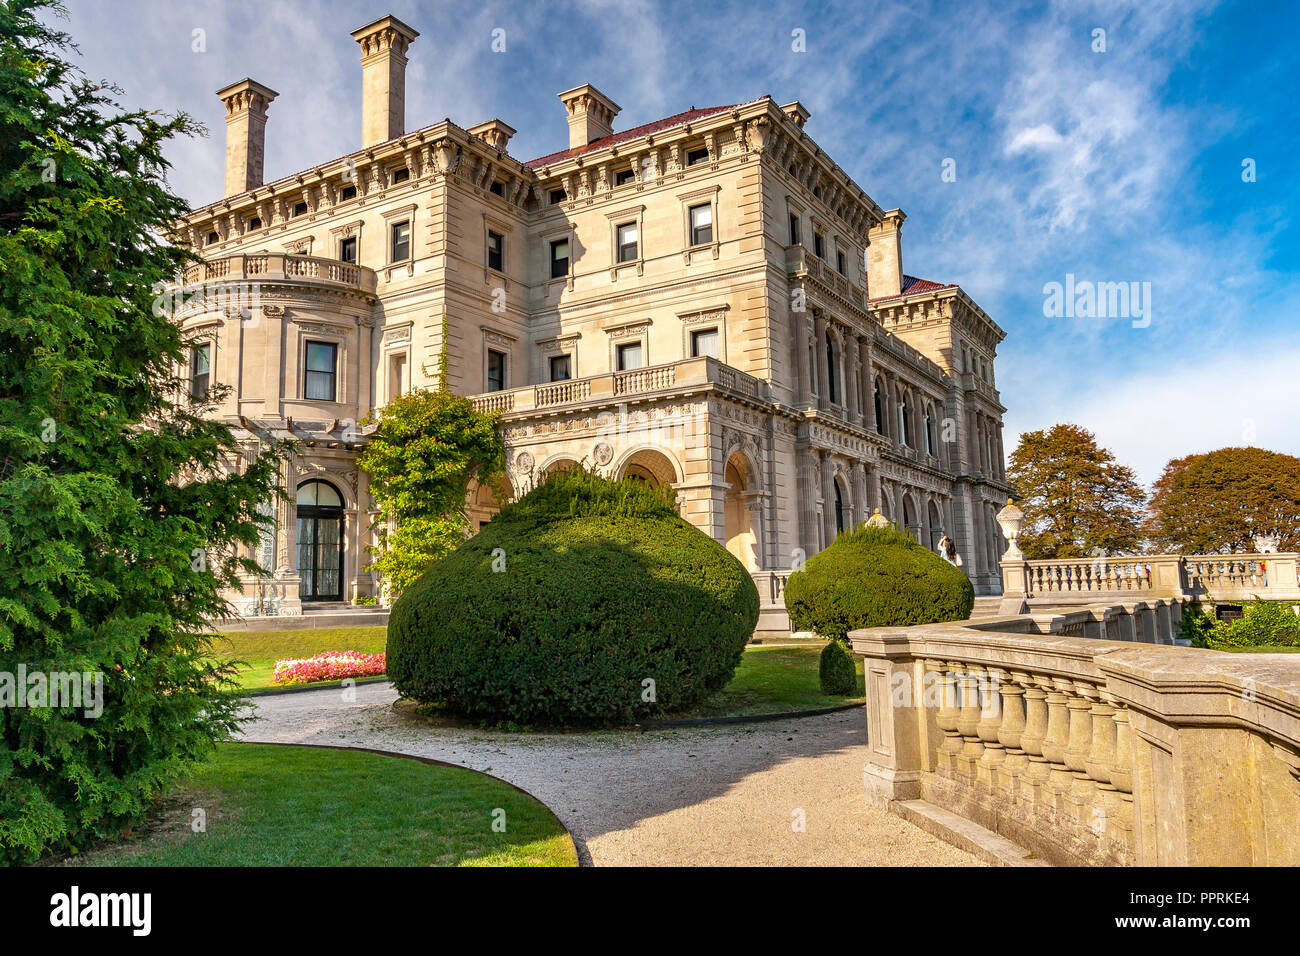 The Breakers Mansion one of the magnificent Newport Rhode Island  Mansions ,Newport, Rhode Island , USA - Stock Image